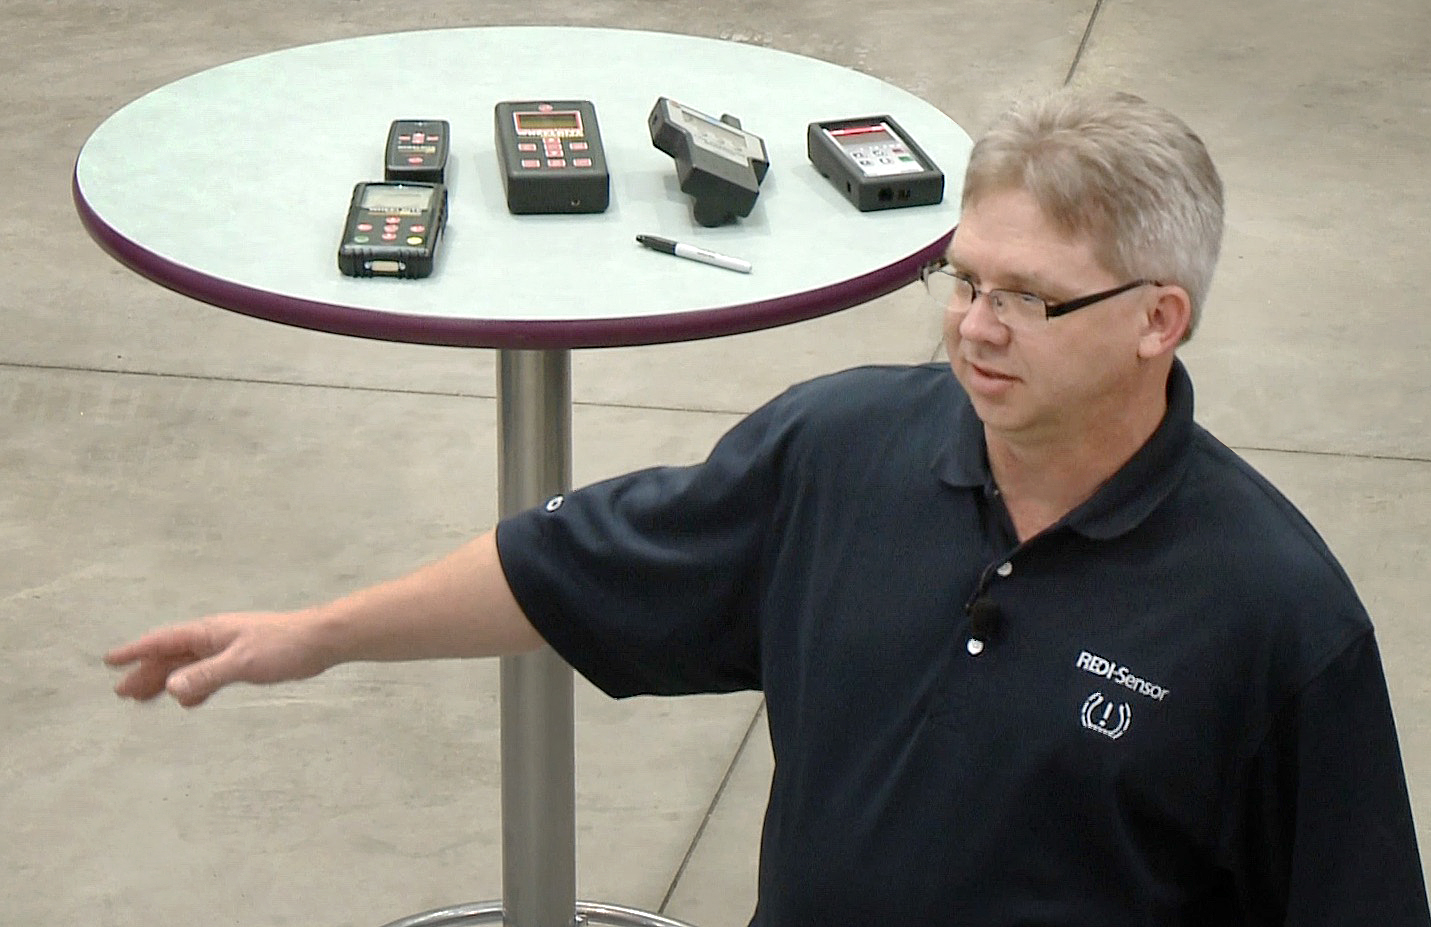 Continental Offers VDO TPMS Training Resources